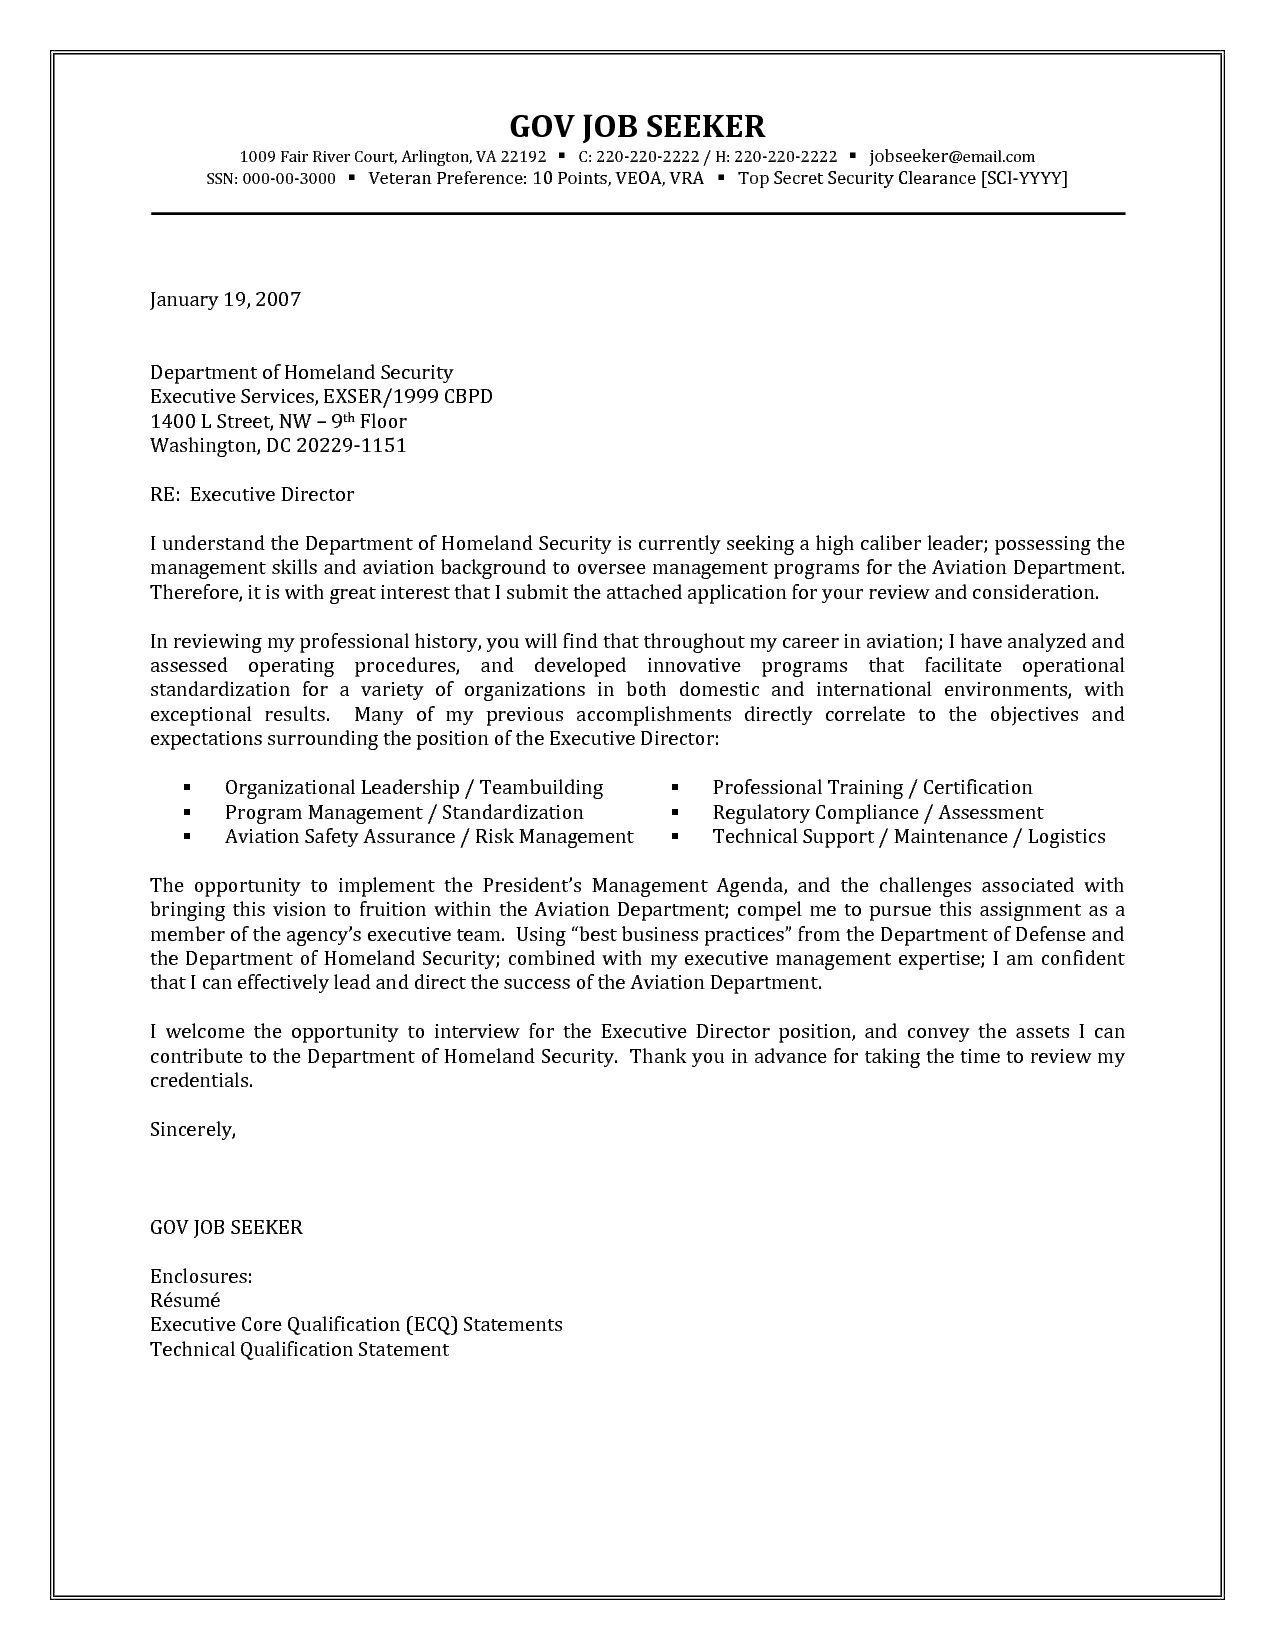 government resume cover letter examples  httpjobresumesample  also government resume cover letter examples  httpjobresumesamplecom